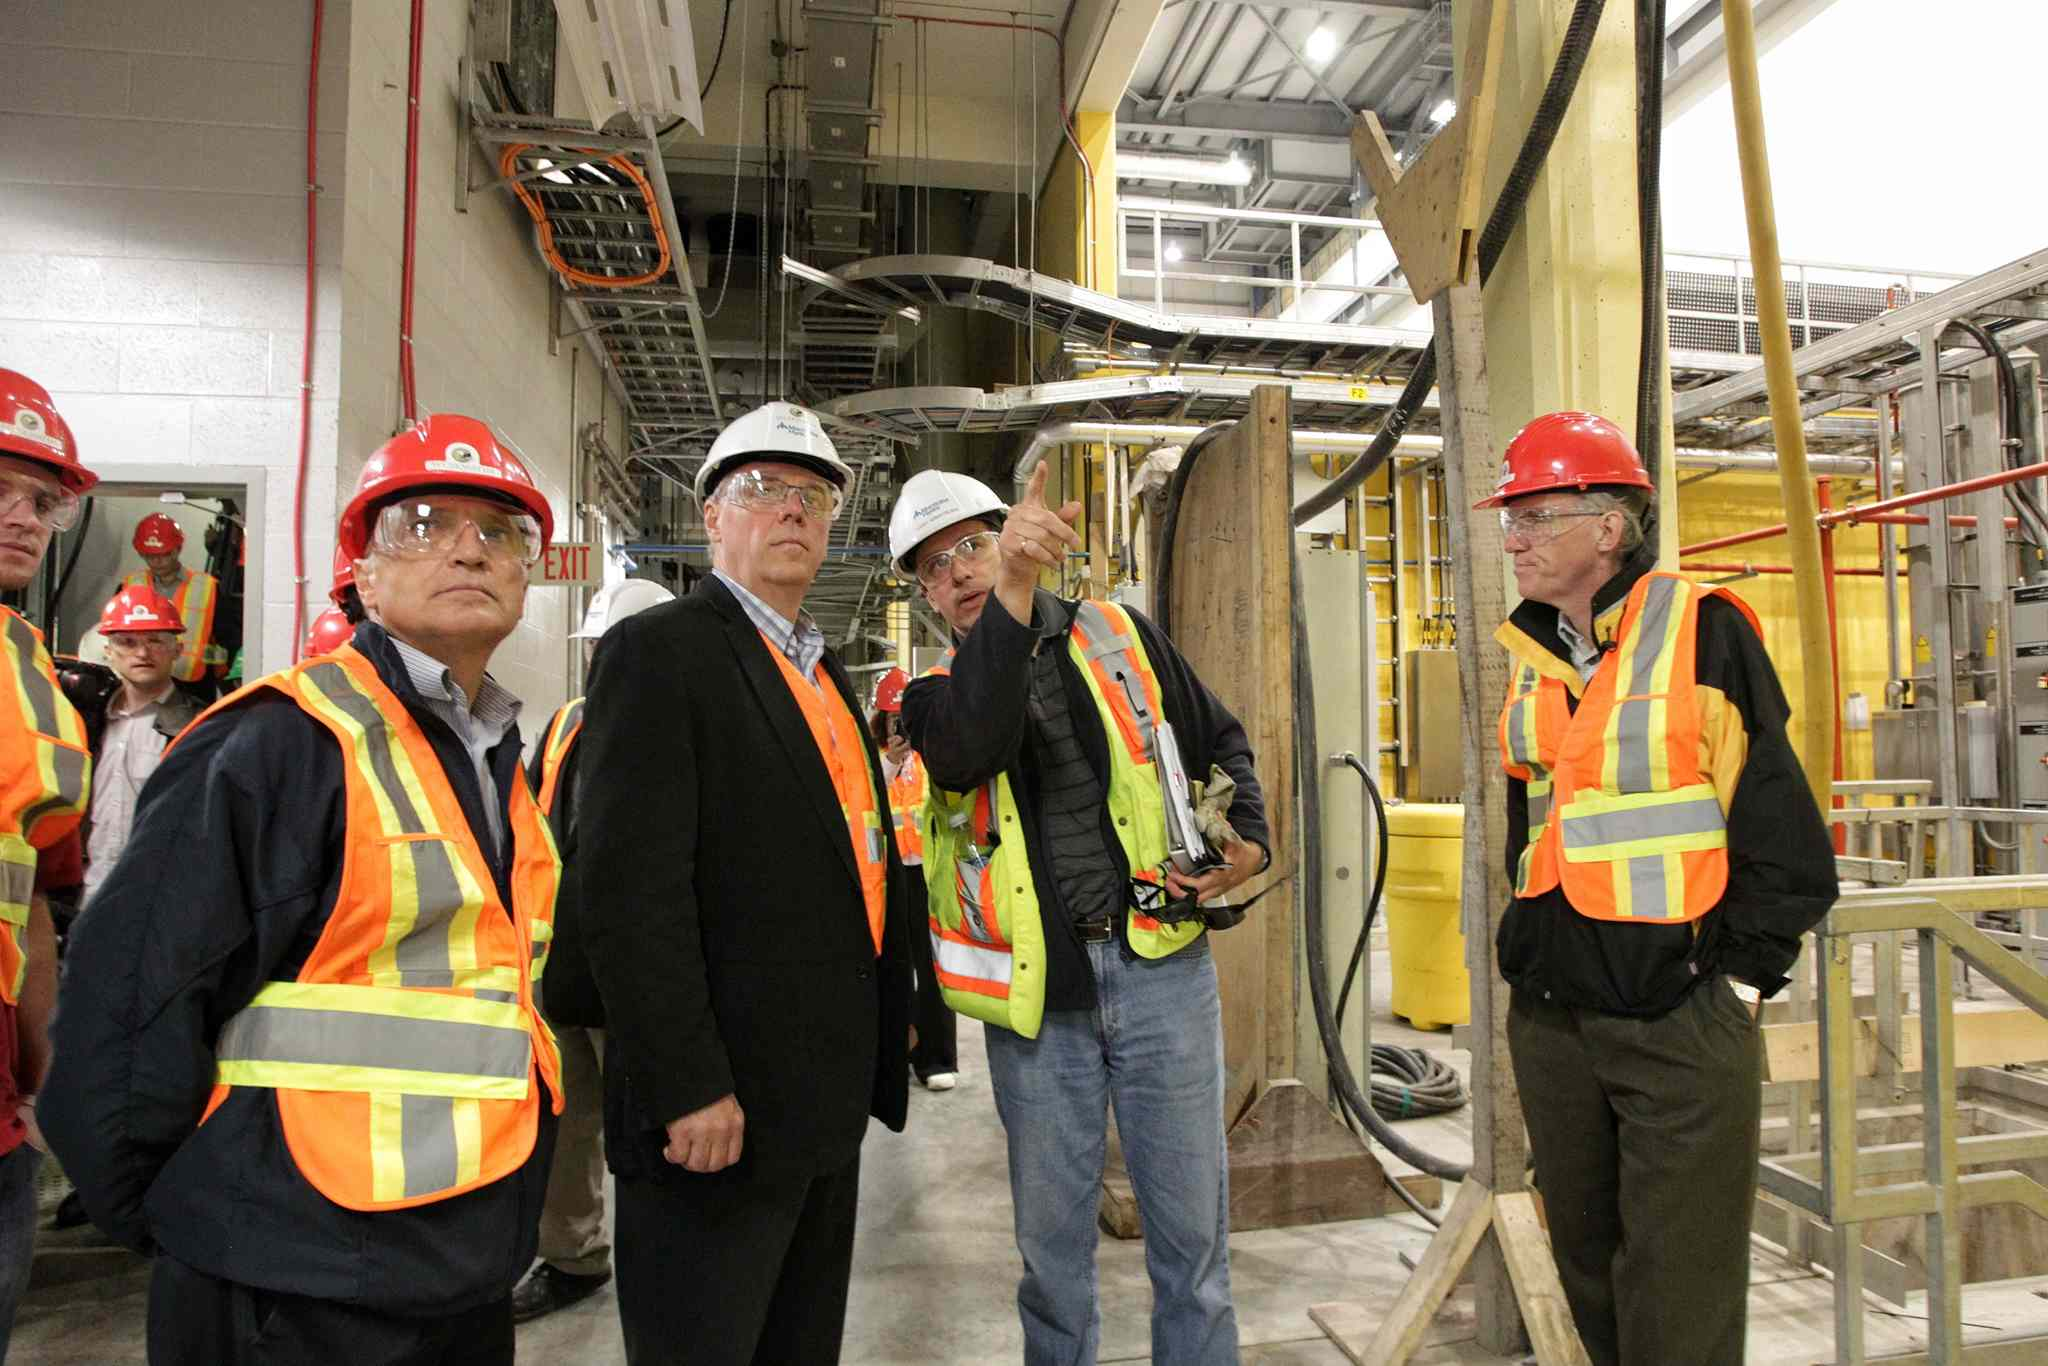 Premier Greg Selinger, second from left, on tour of Wuskwatim dam.